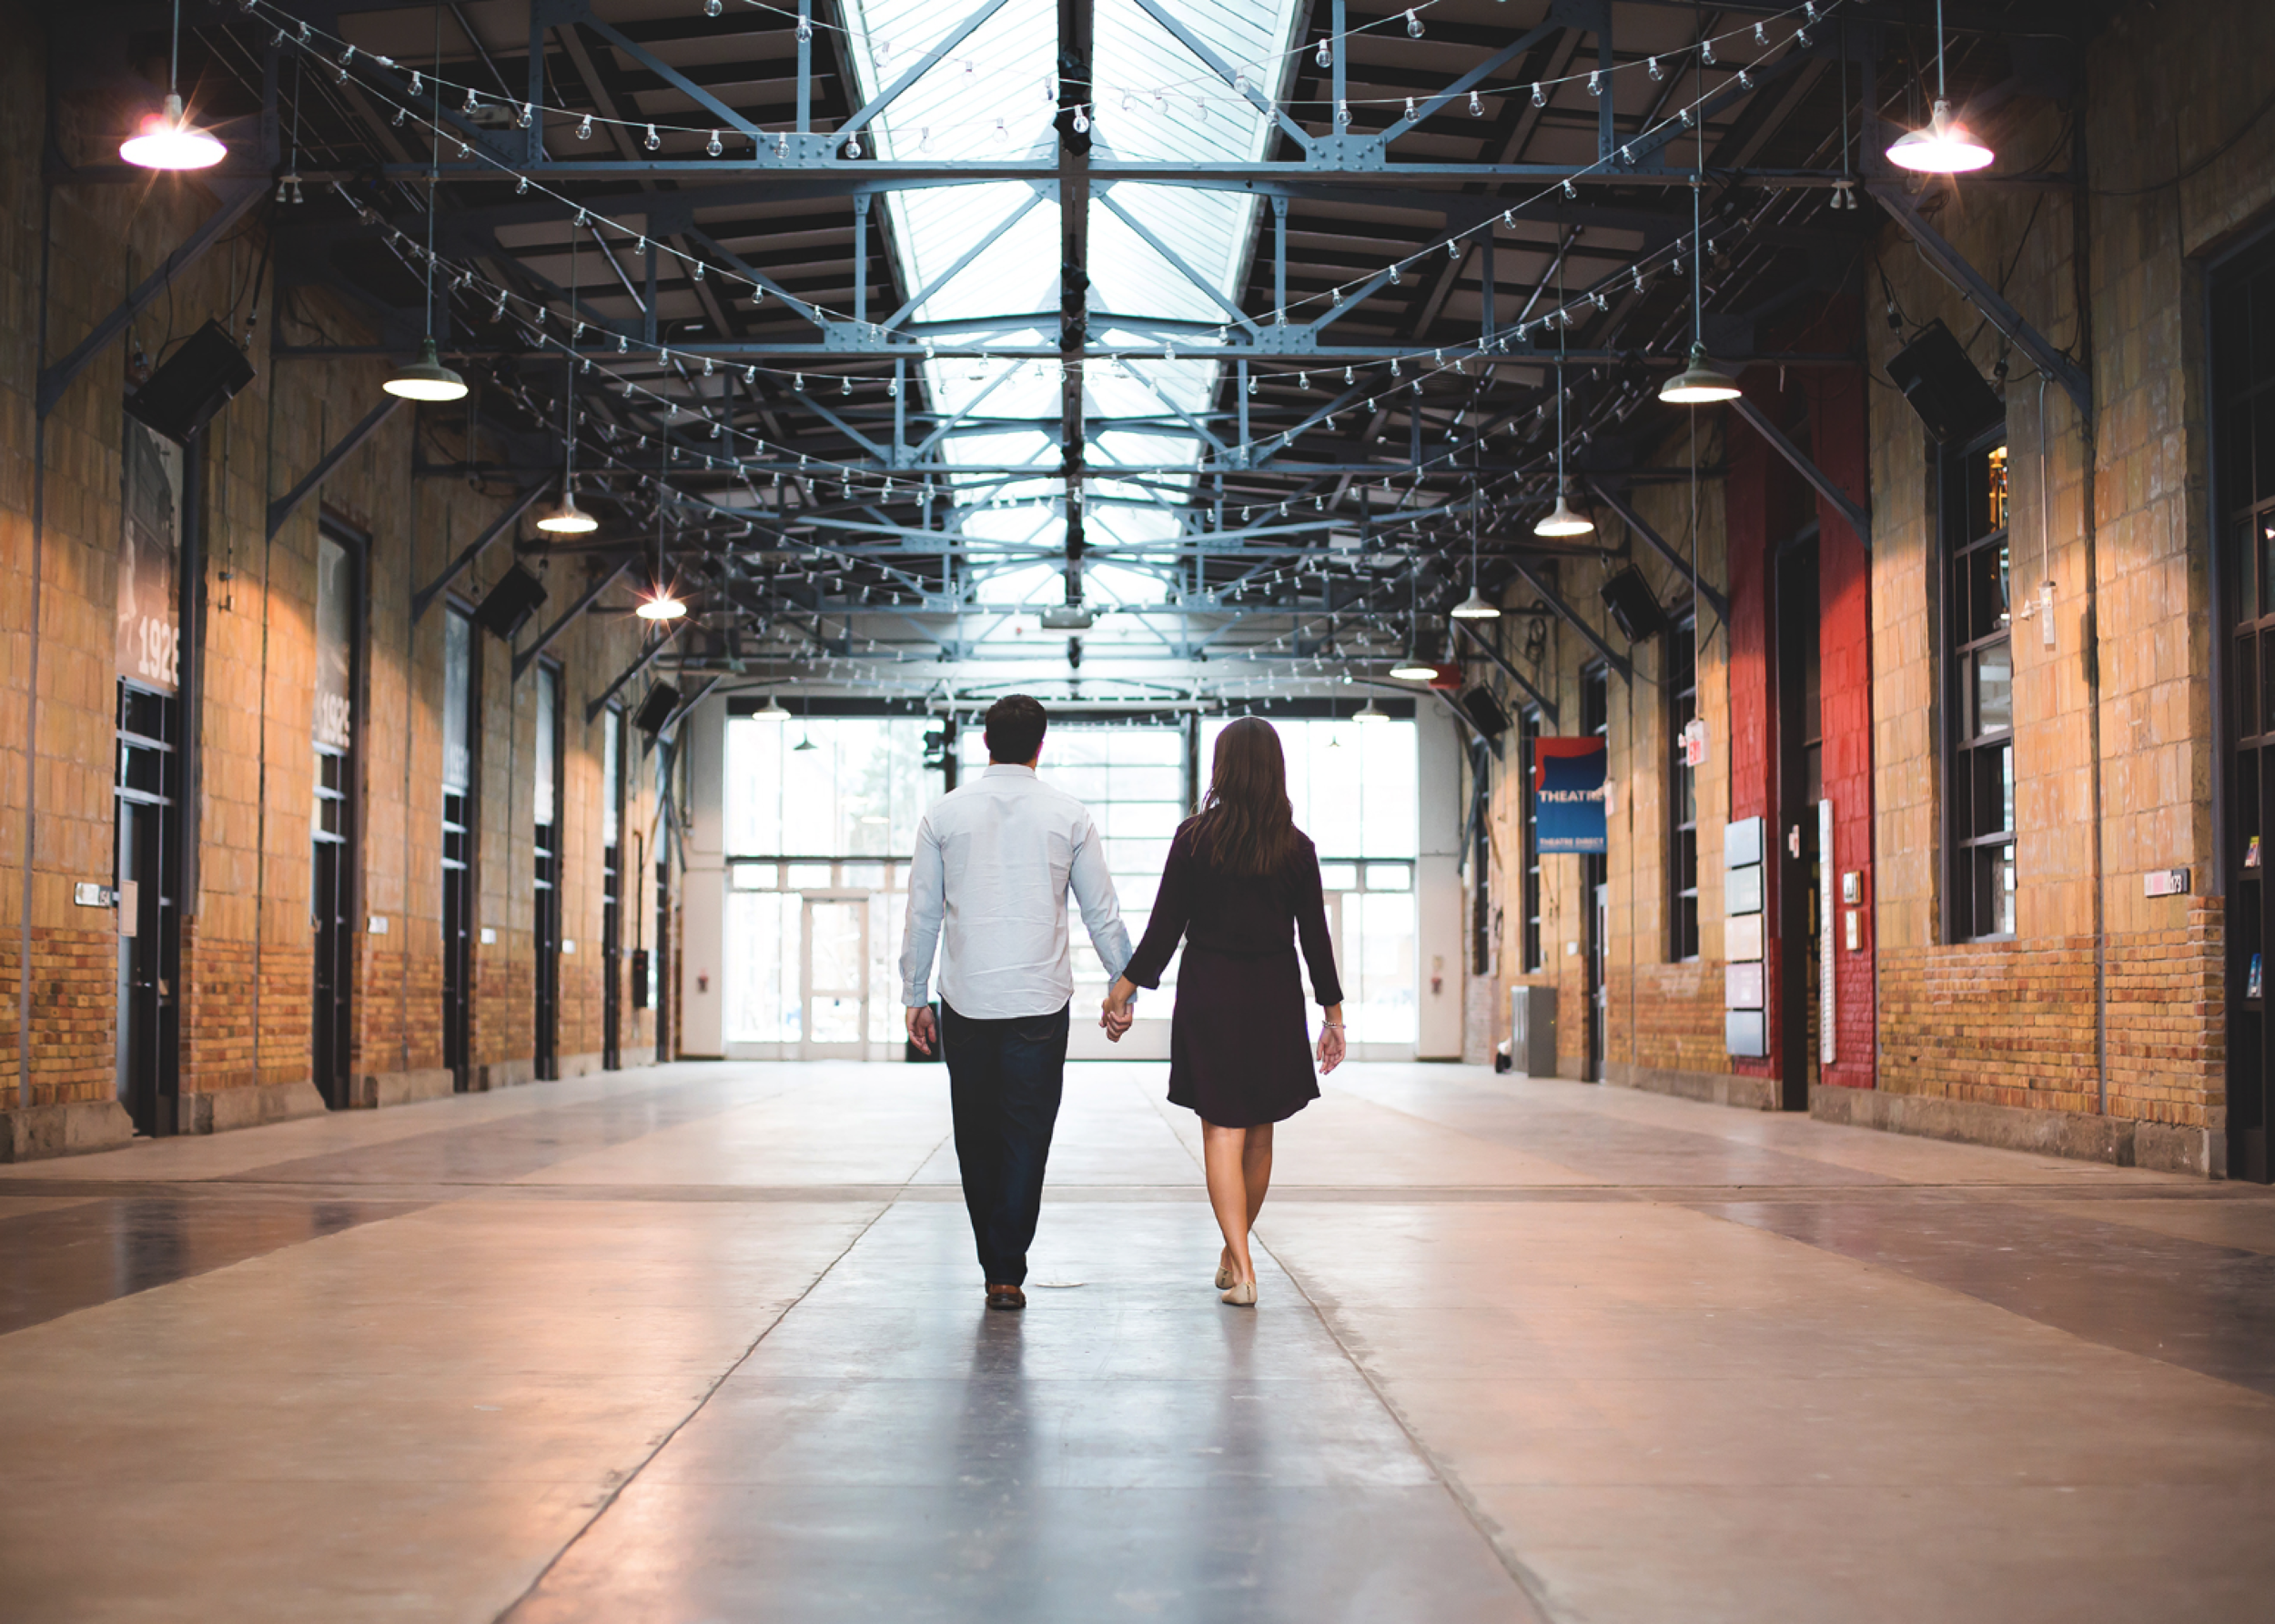 Engagement-Session-Downtown-Toronto-Hamilton-Burlington-Oakville-Niagara-Wedding-Photographer-Engaged-Photography-Artscape-Wynchwood-Barn-Urban-HamOnt-Engaged-Moments-by-Lauren-Photo-Image-3.png